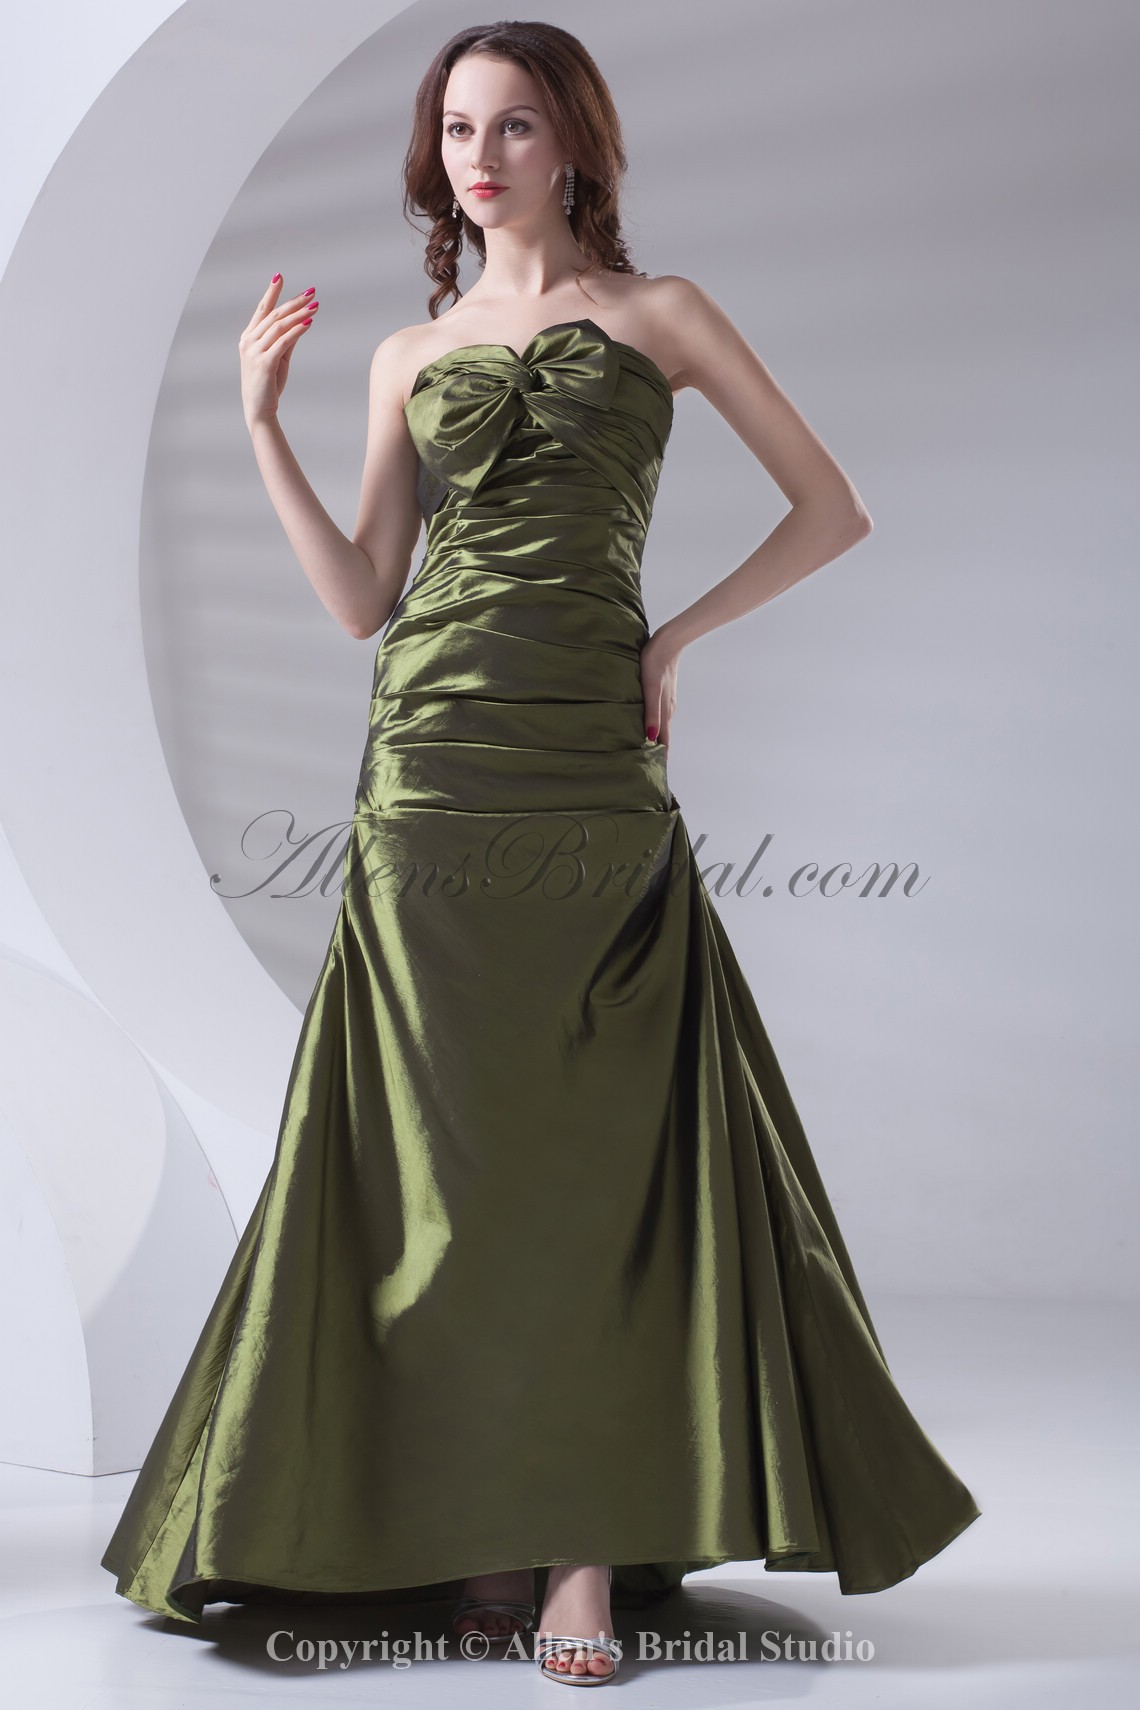 /406-3244/taffeta-strapless-neckline-a-line-floor-length-directionally-ruched-prom-dress.jpg